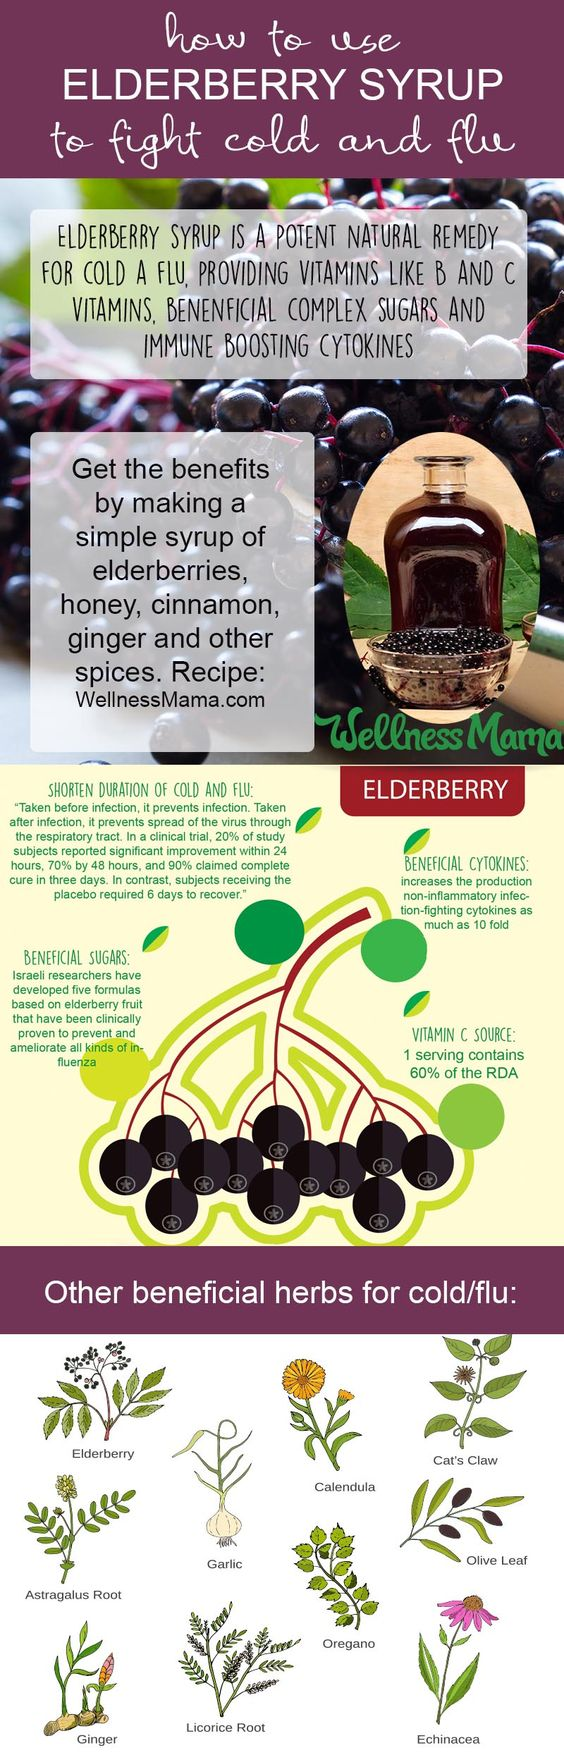 elderberry syrup to fight cold and flu